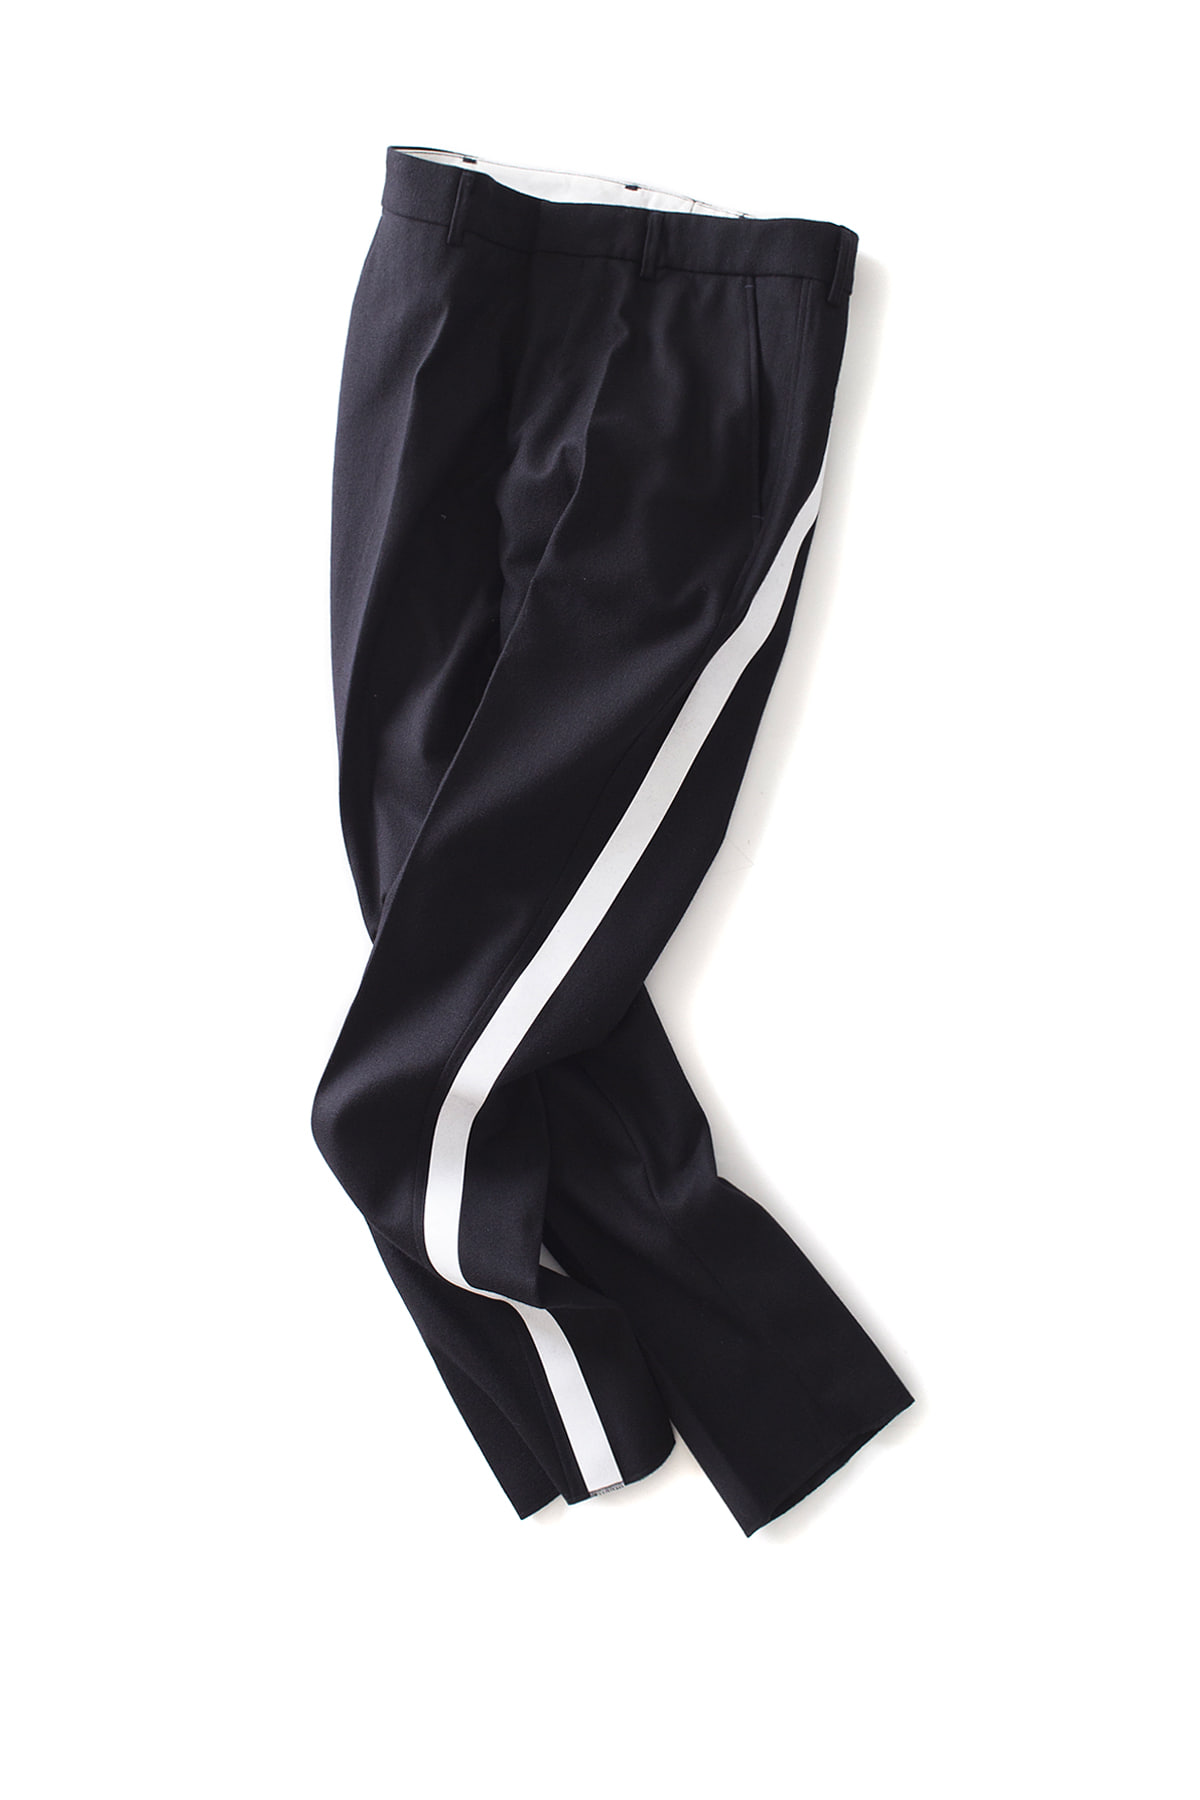 THE EDITOR : Line Wool Trouser (Black x White Line)